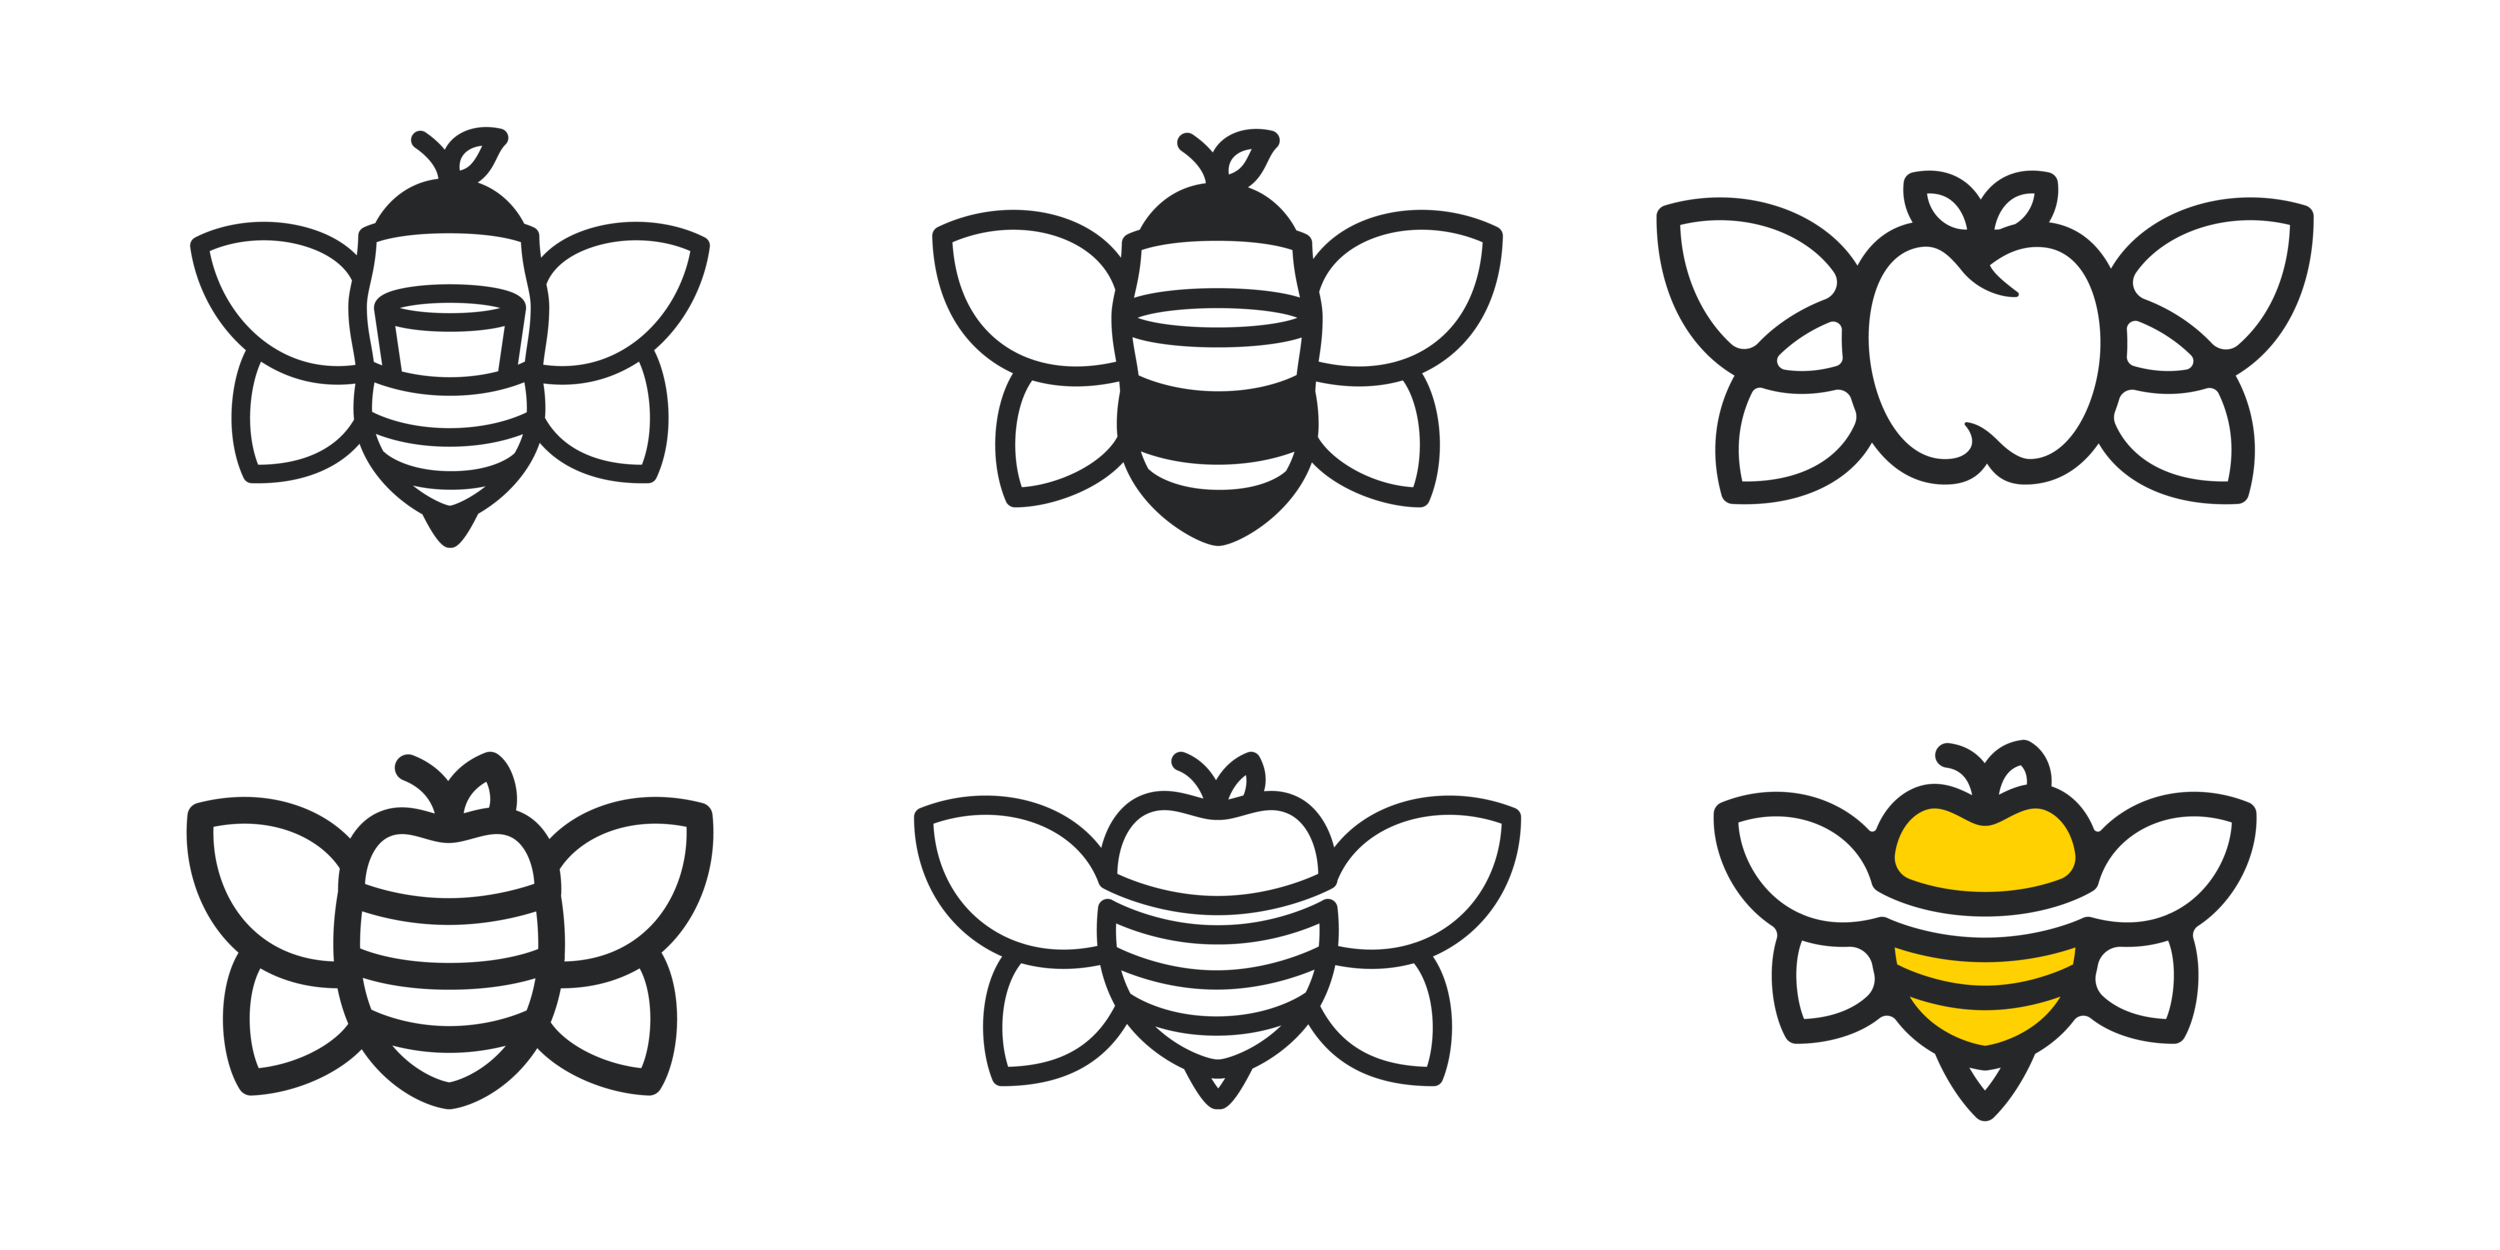 Evolution-of-Bee-01.png